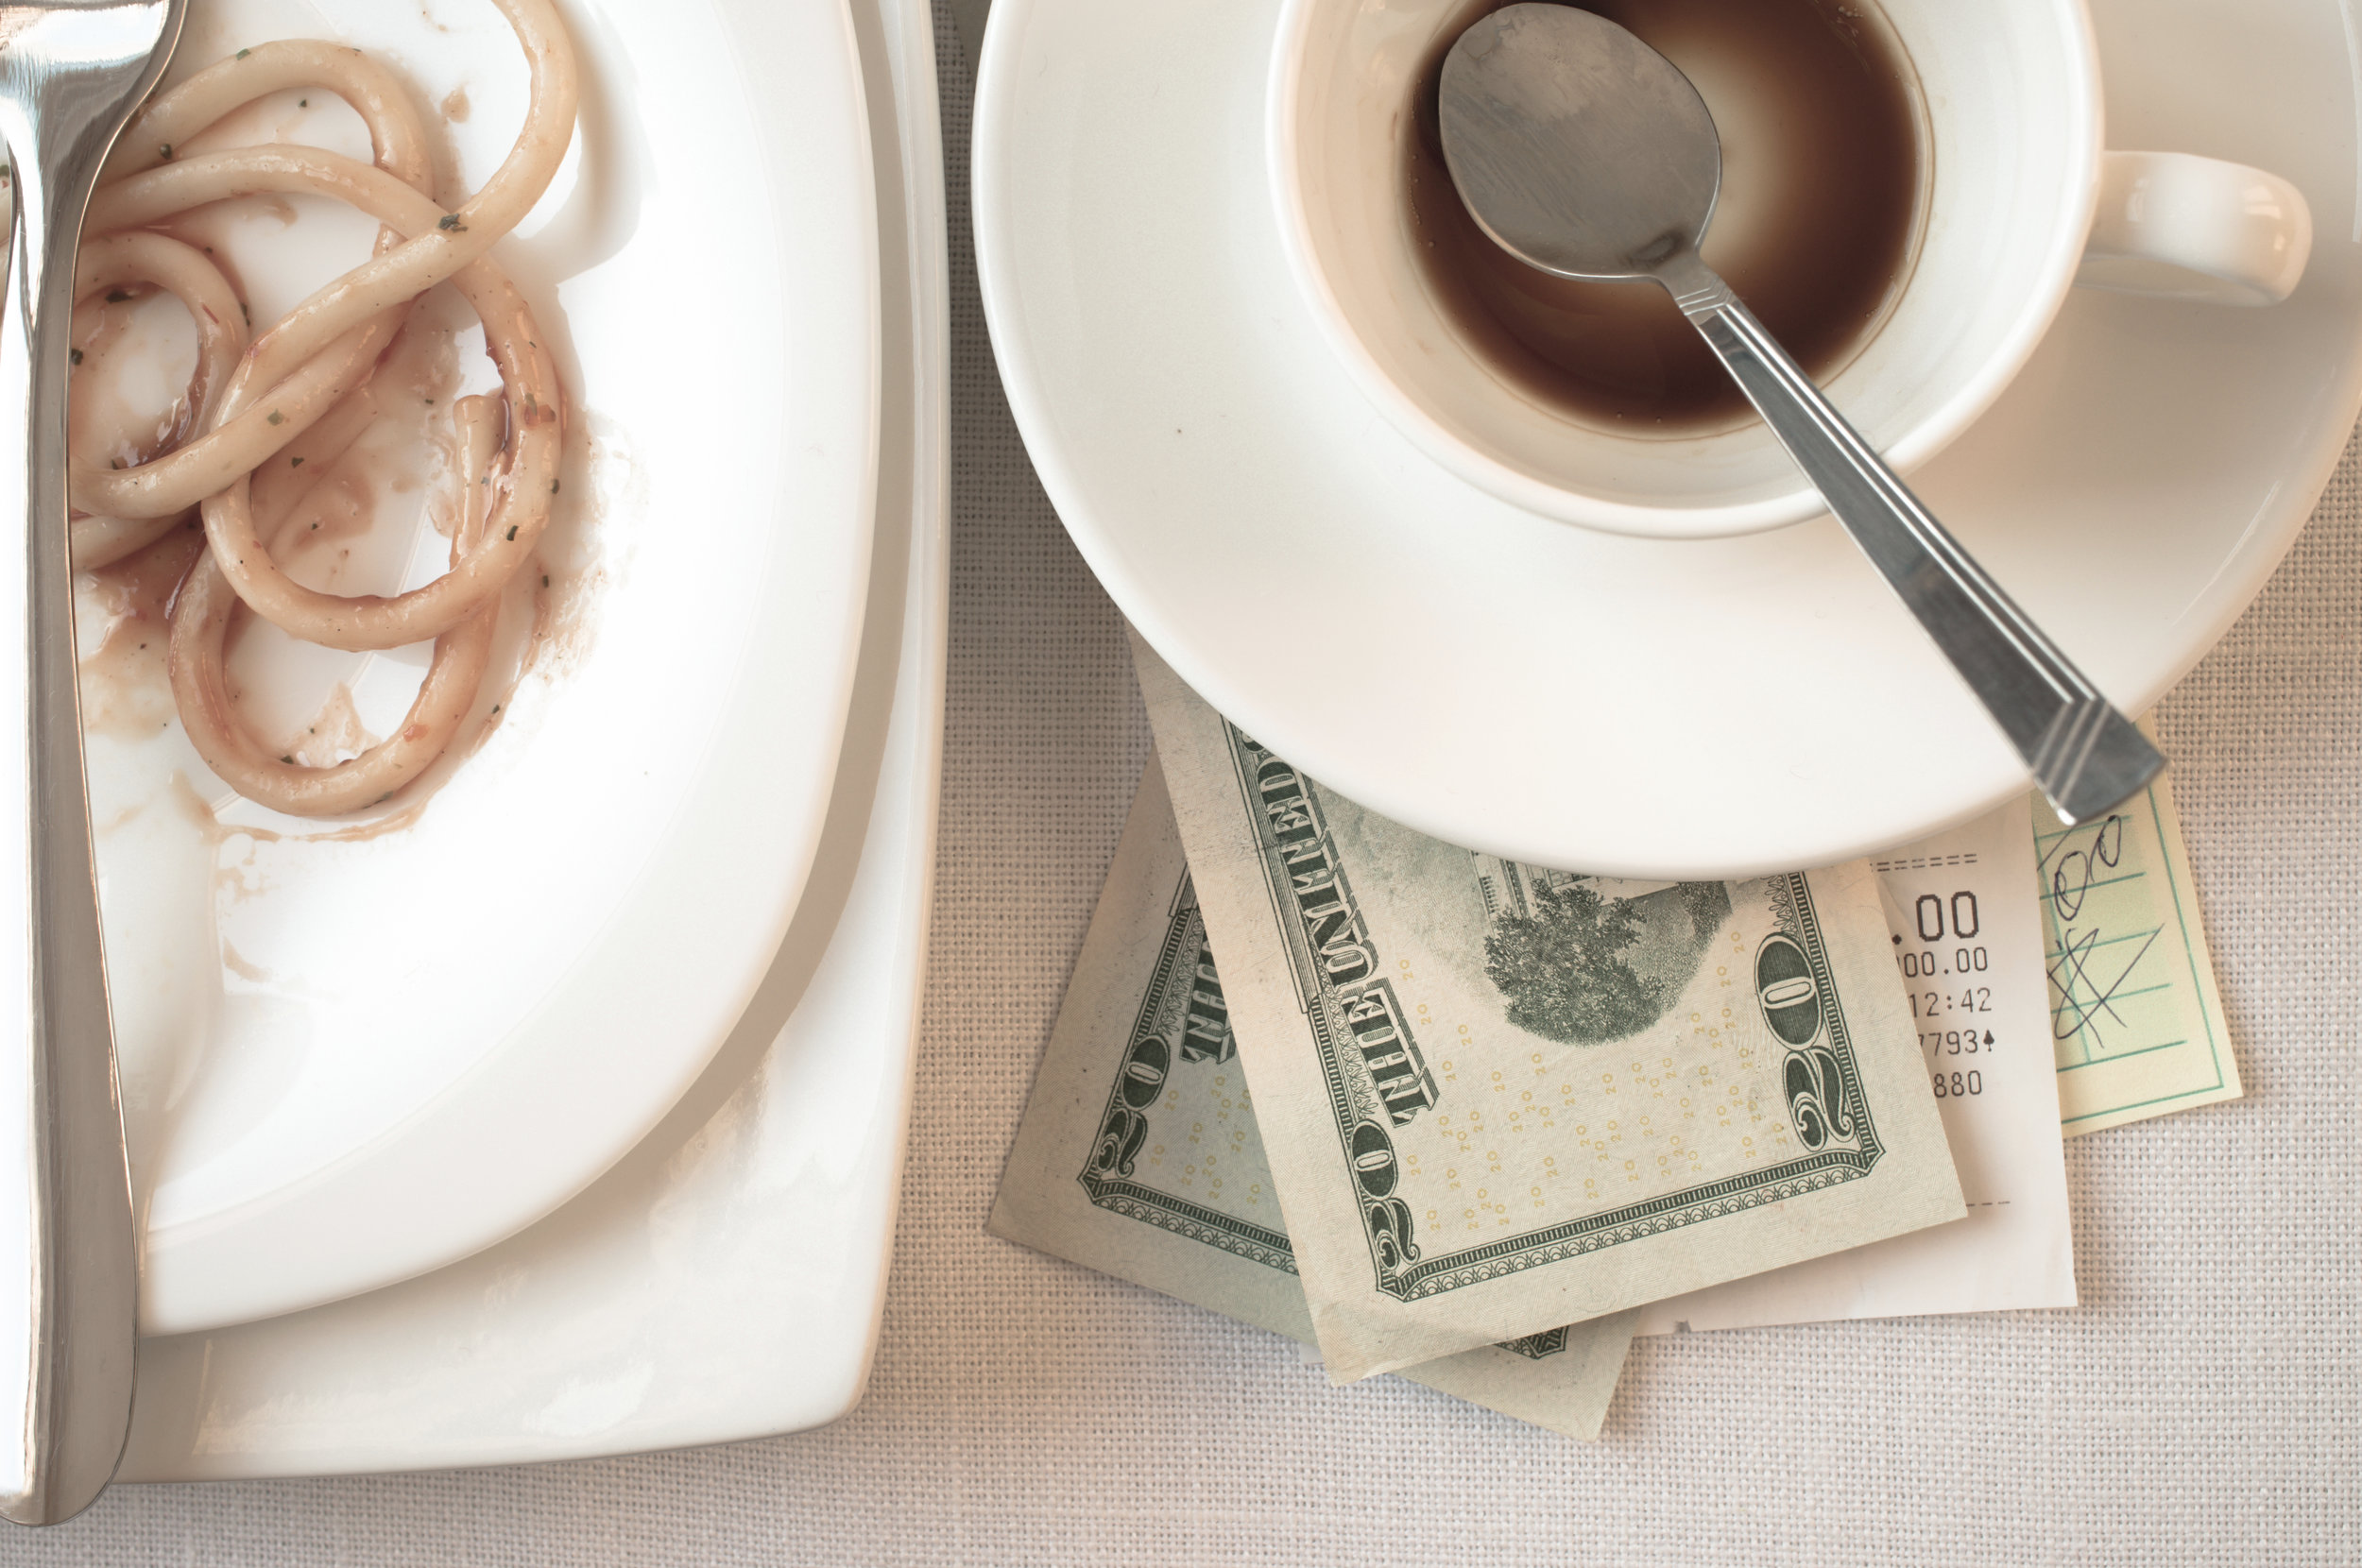 THE TIPPED WAGE IS GOOD FOR WAITSTAFF